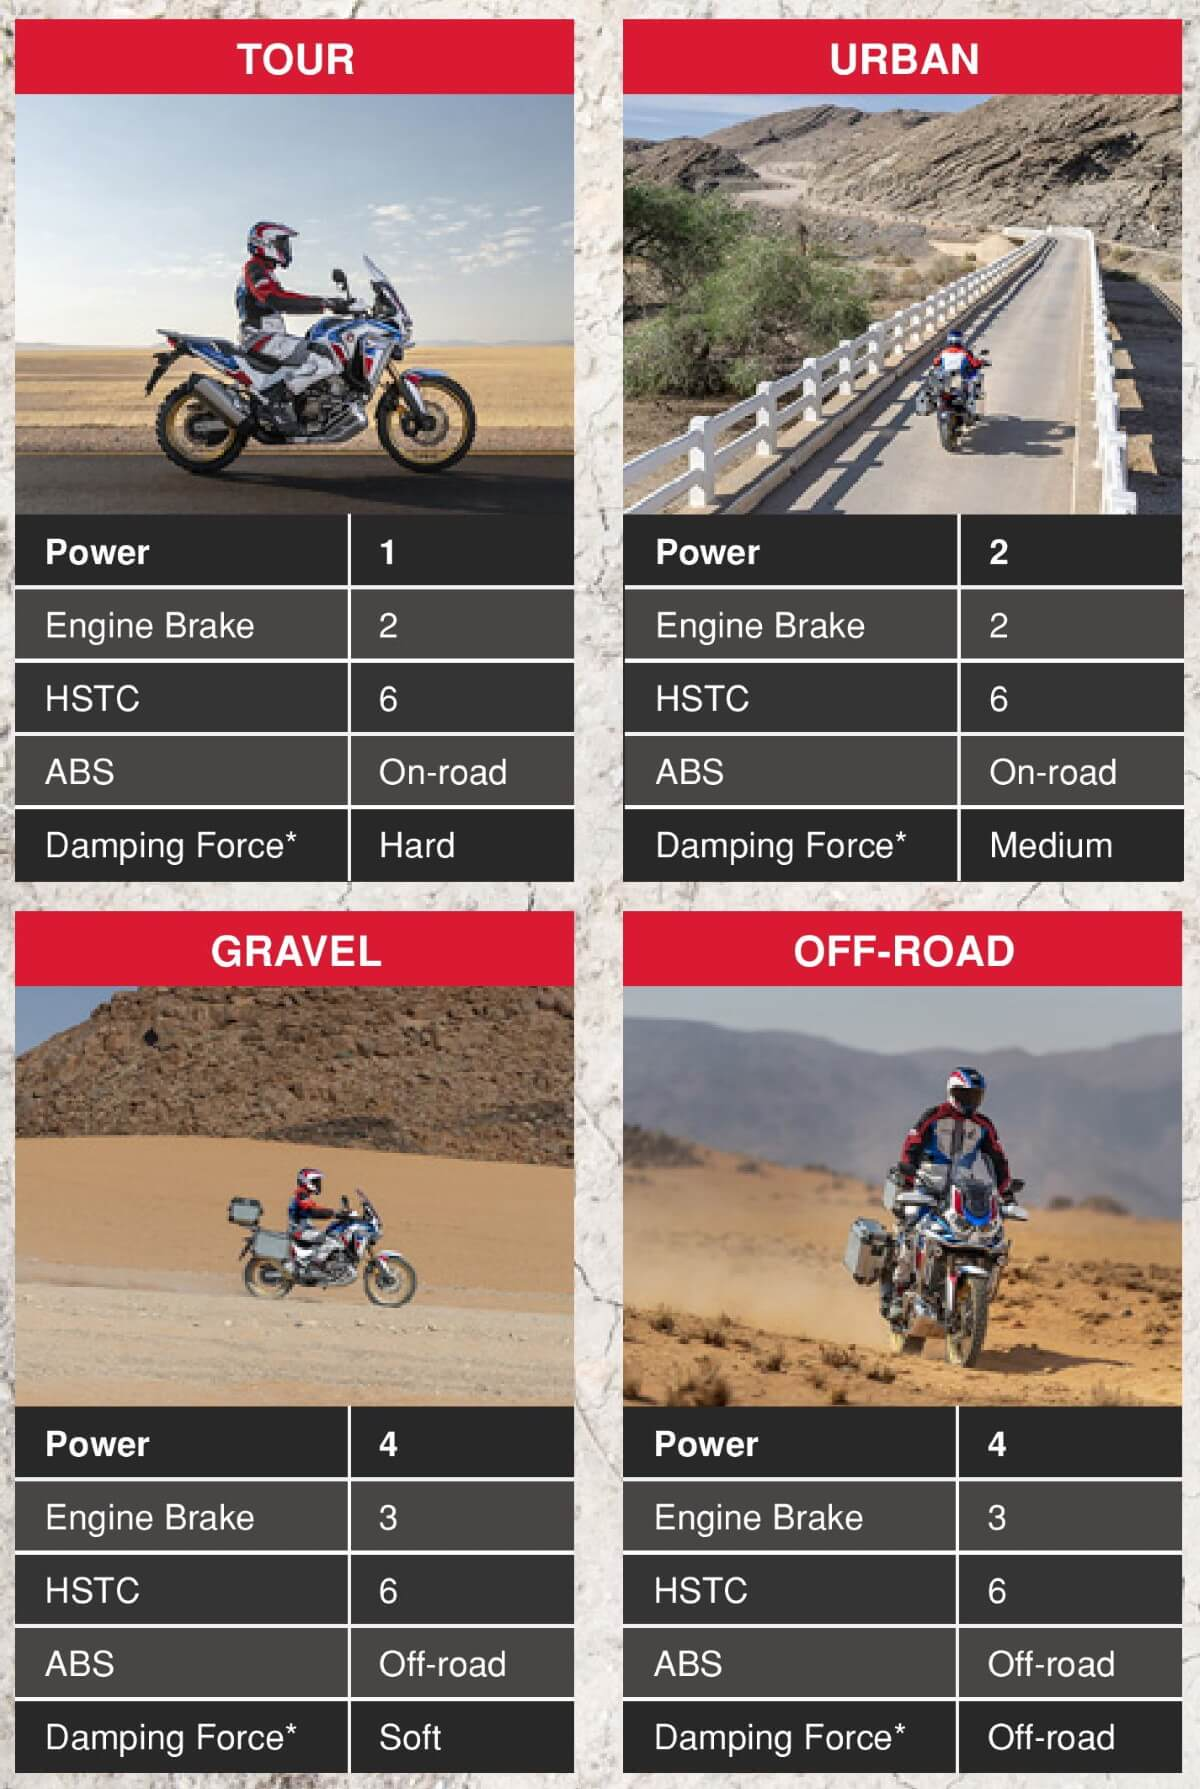 2020 Honda Africa Twin 1100 Riding Modes Explained - CRF1100L